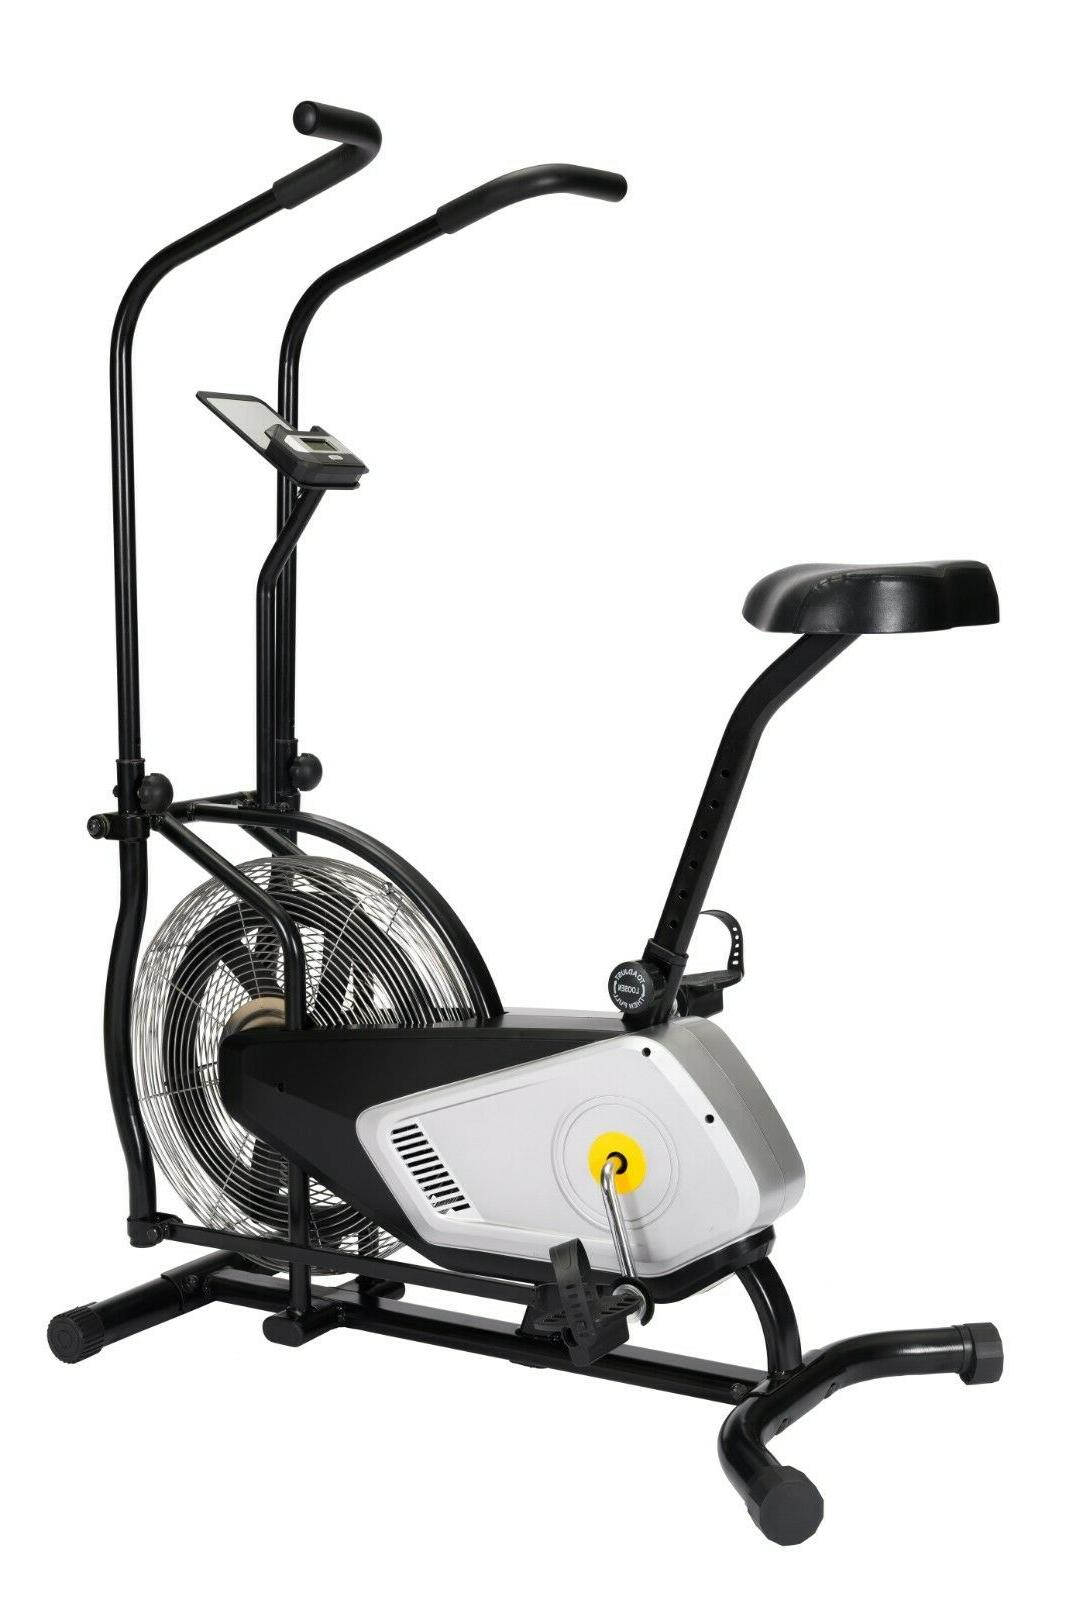 Indoor Exercise Bike Air Cycling Bike Design Home Gym Use Co